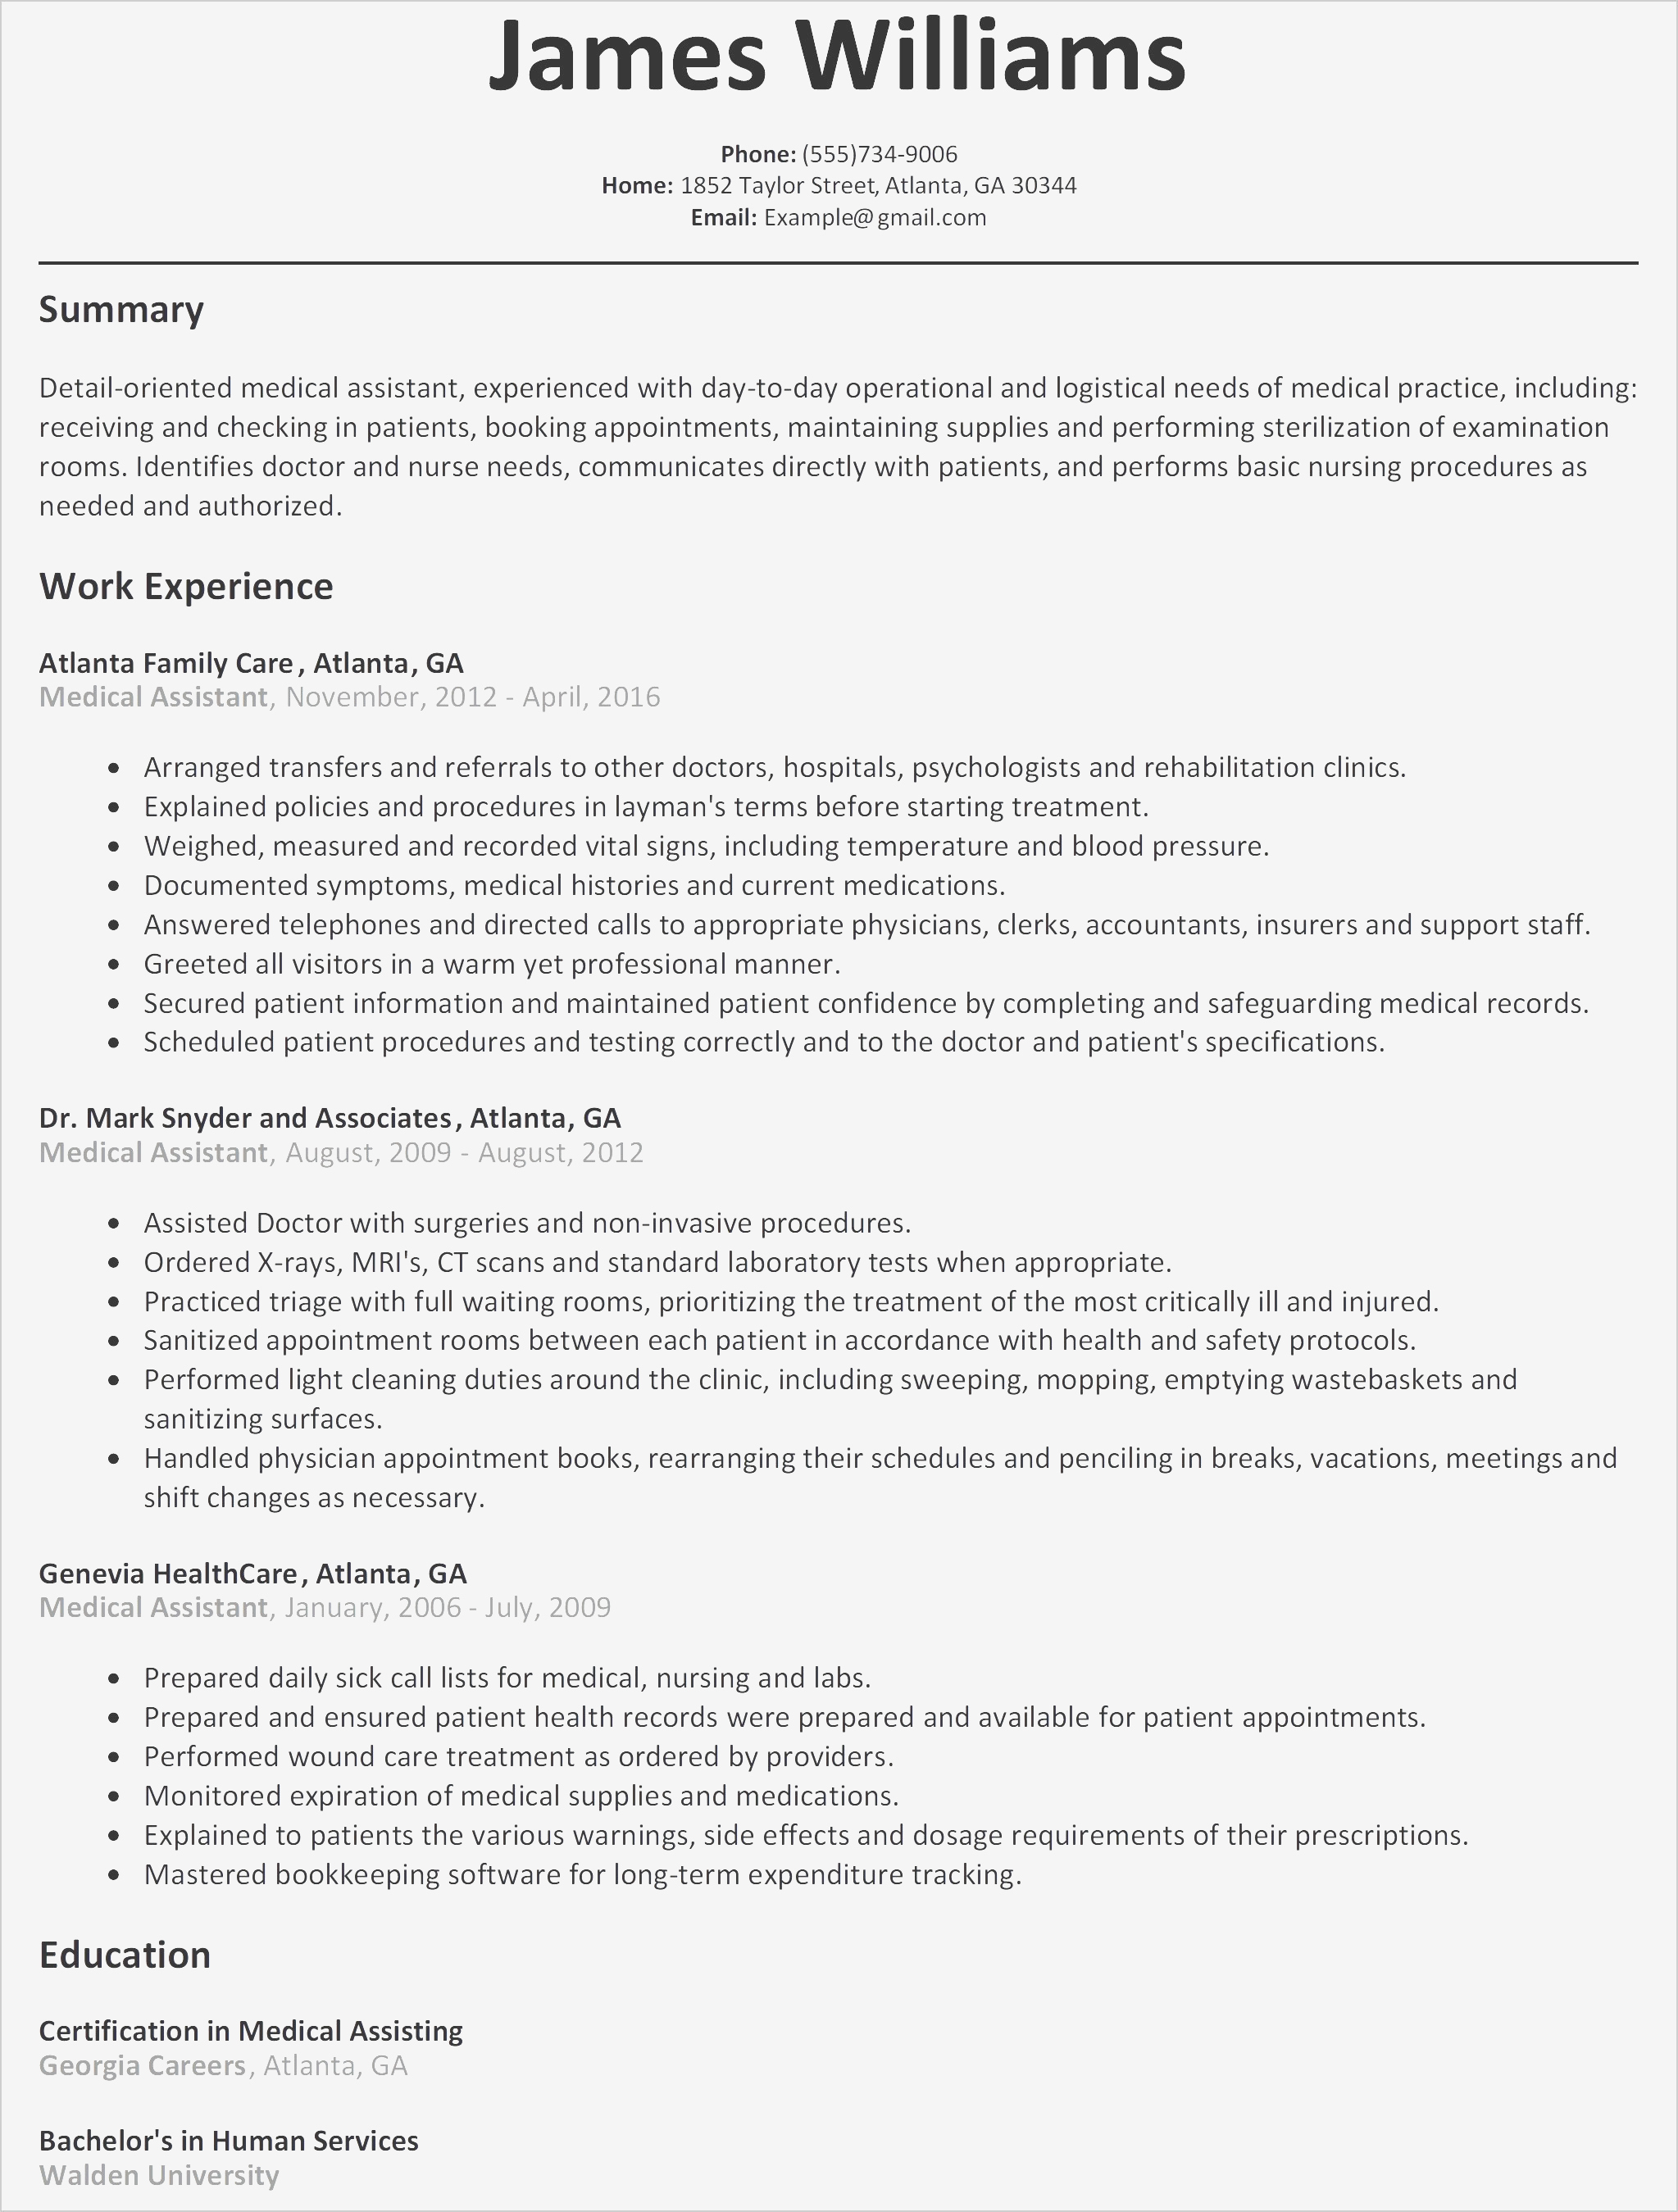 Customer Service Resume Template - Gmail Resume Templates